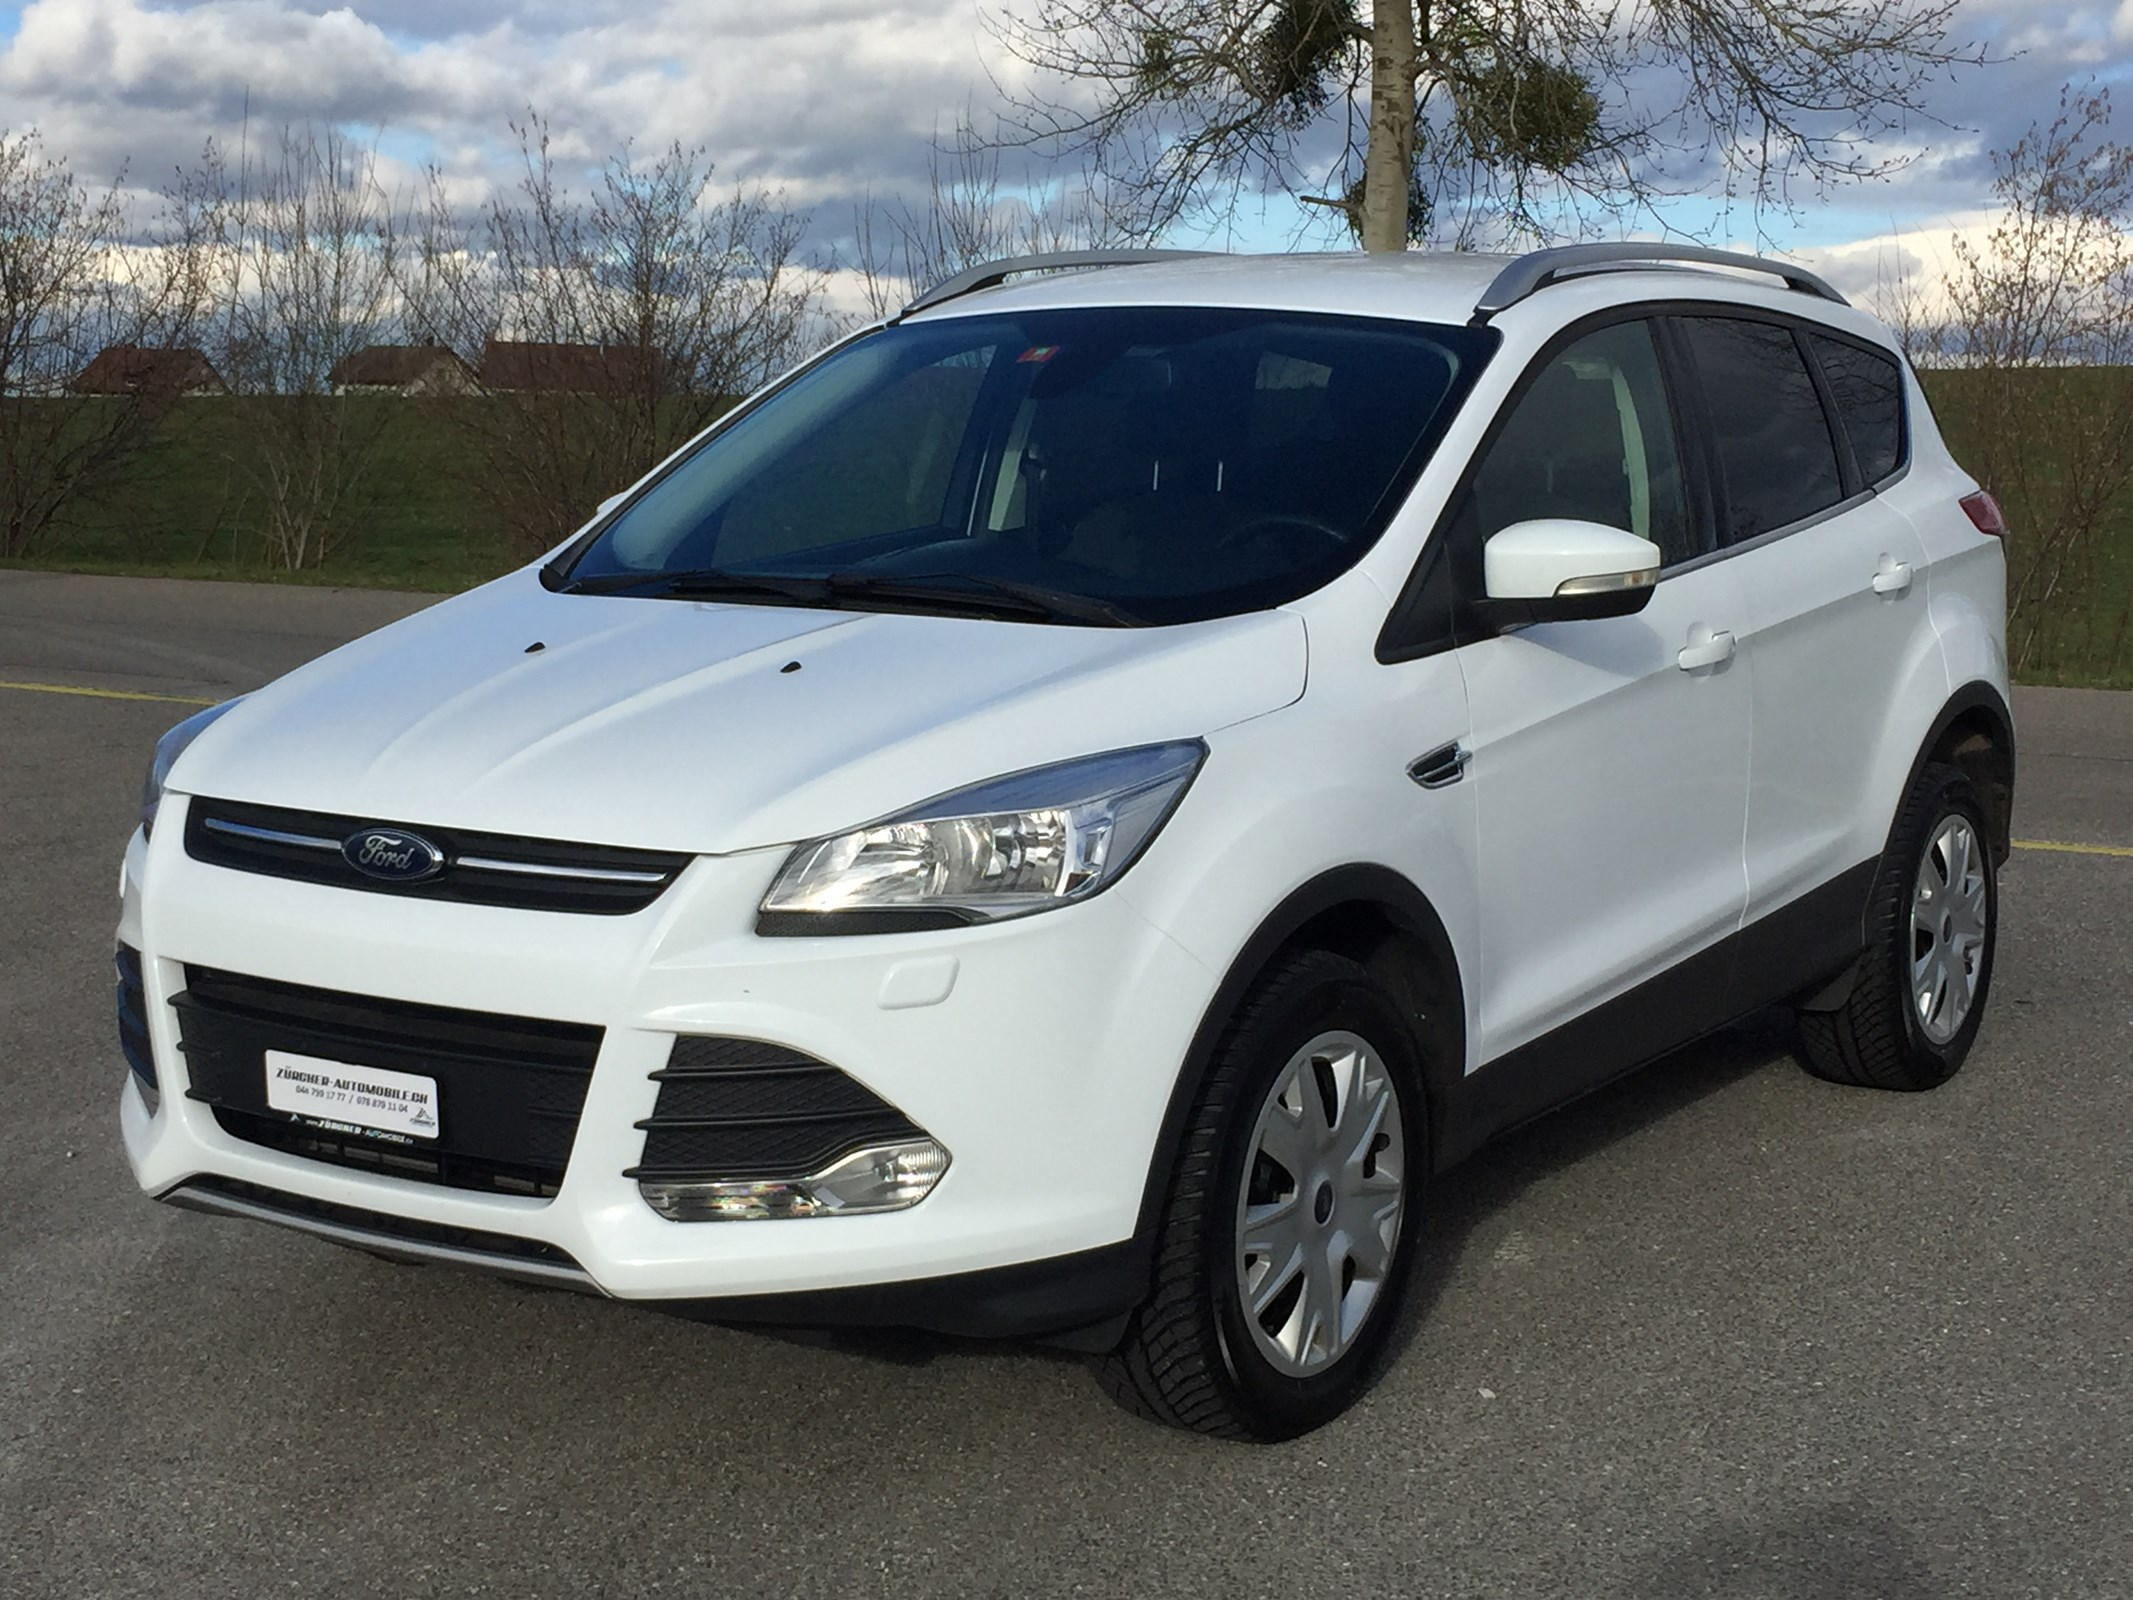 suv Ford Kuga 1.6 SCTi Carving 4WD Automatic